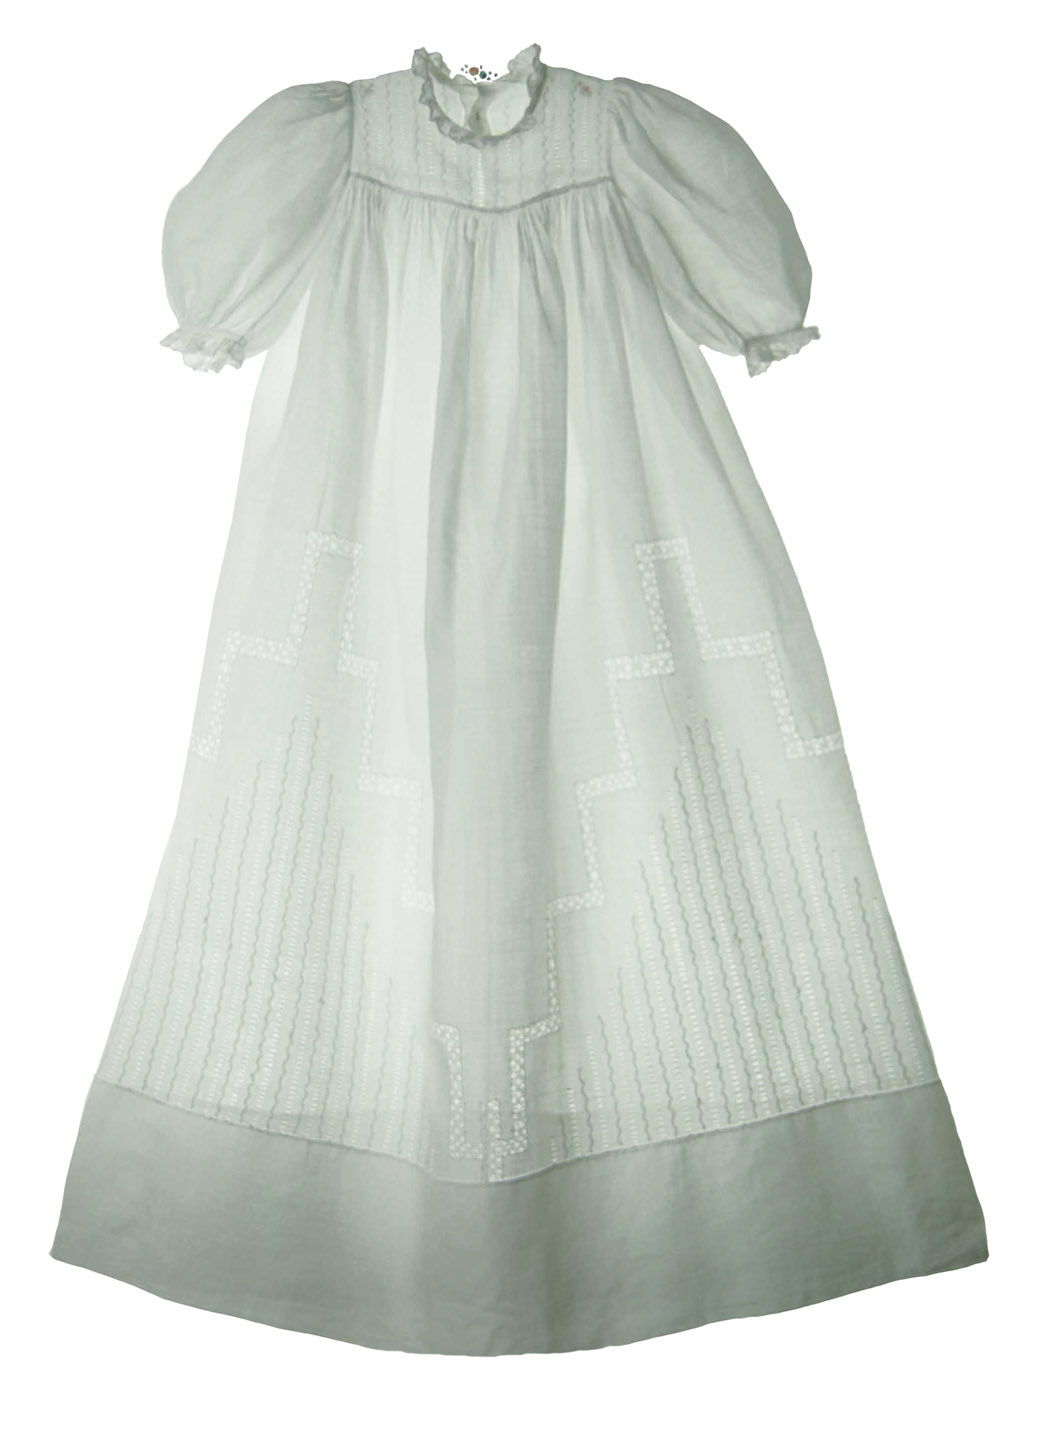 7c521467bfa4 Heirloom 1880s Christening Gown with Incredible Pulled Thread Openwork  Embroidery